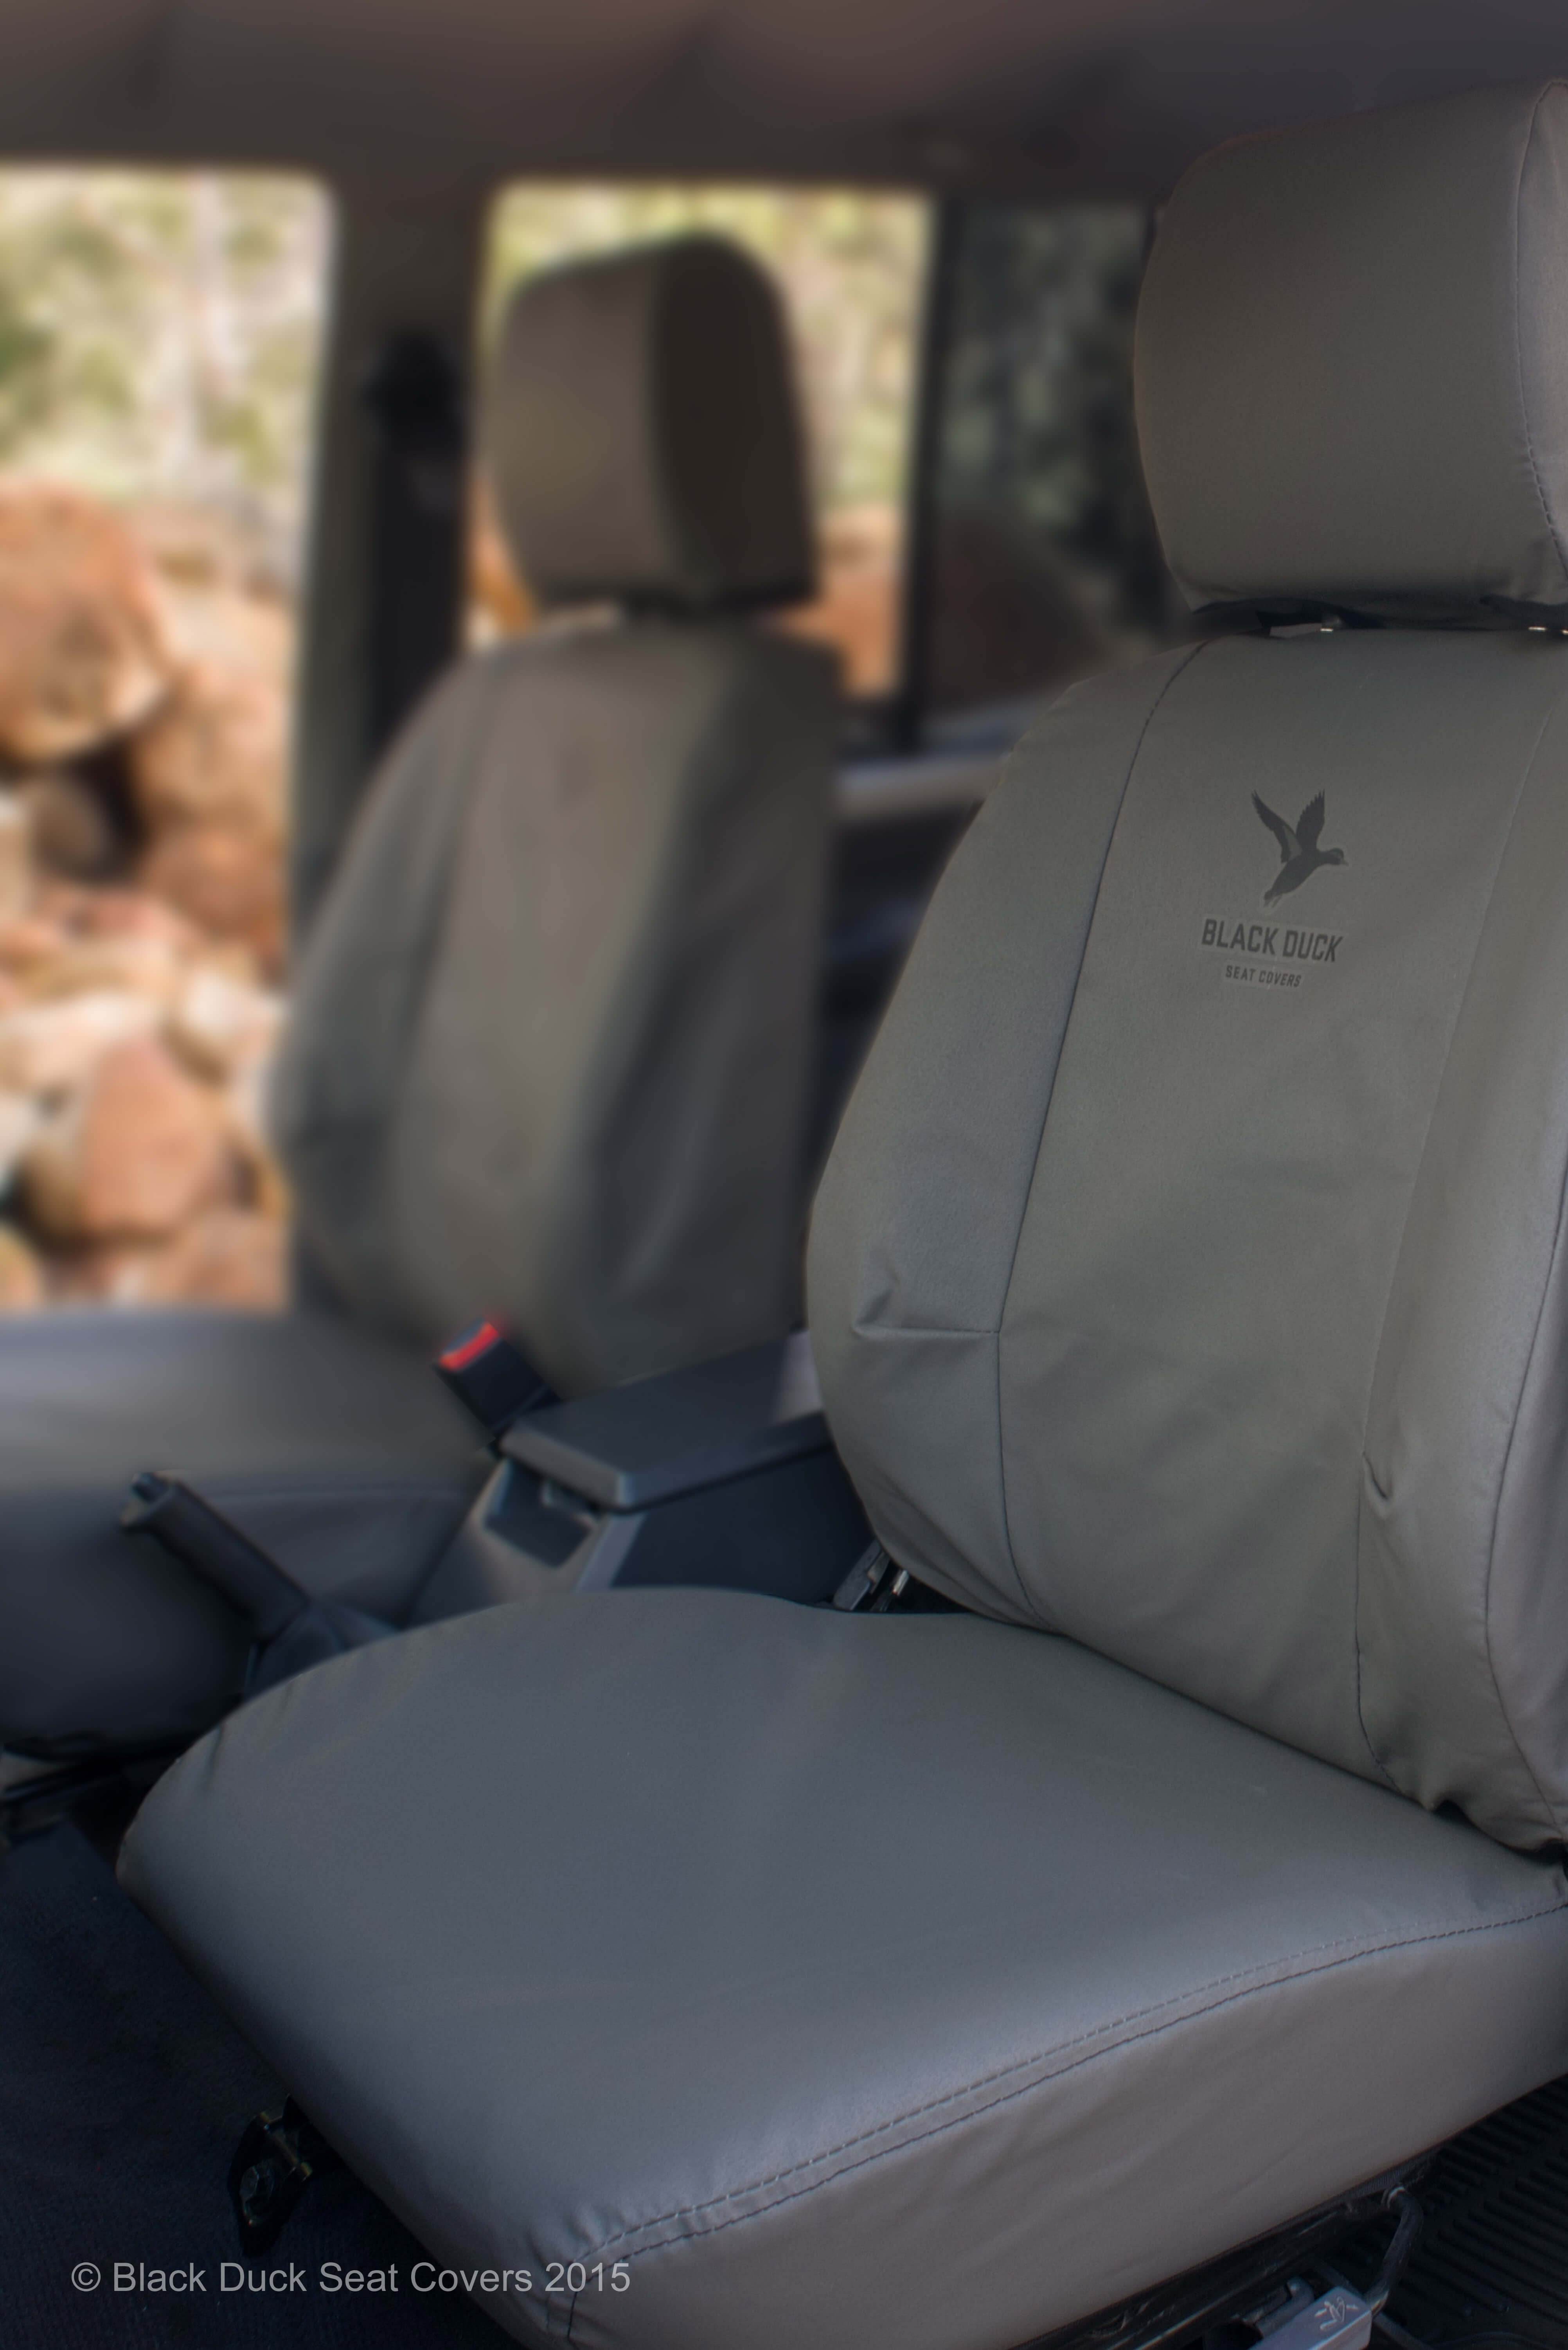 Black Duck Seat Covers Online